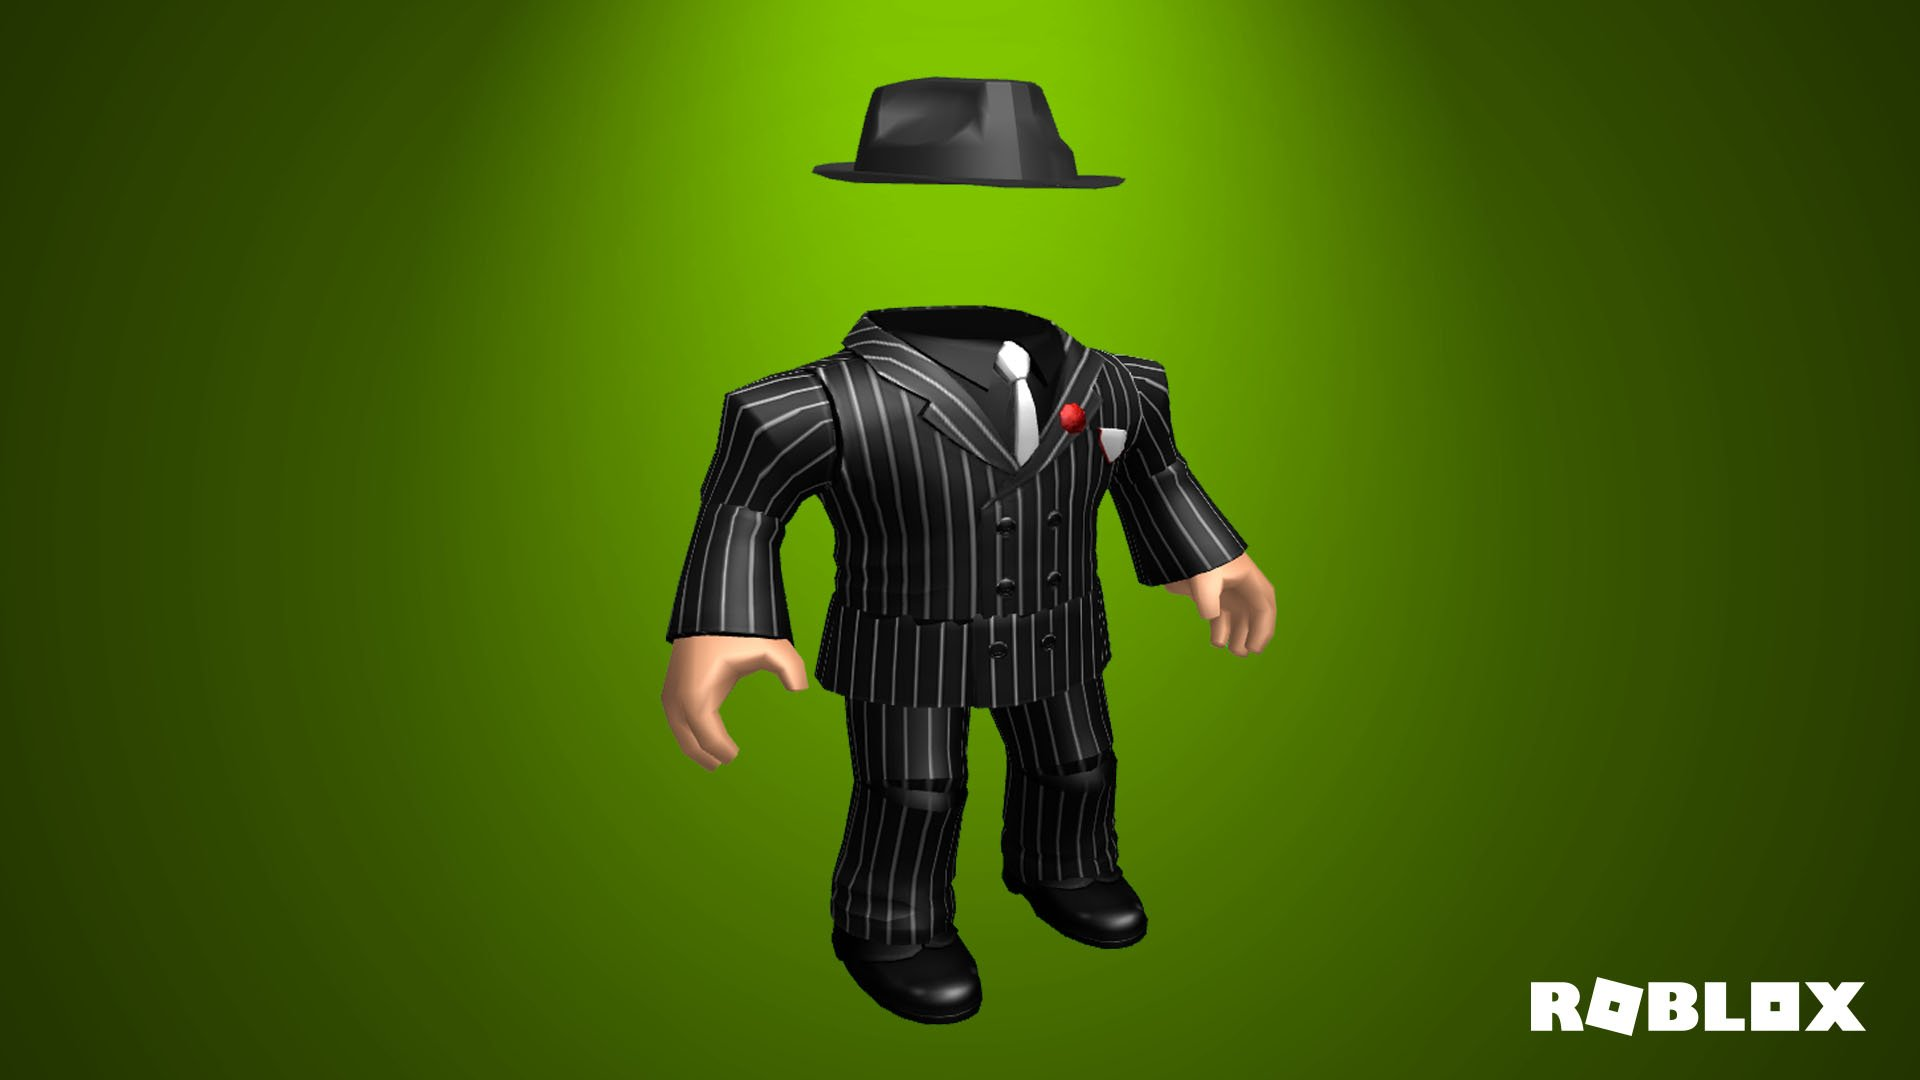 Classic Fedora Roblox Roblox On Twitter This Black Fedora Was The First Of Its Kind On Roblox Now There Are Plenty Of Different Styles Which Fedora Is Your Favorite Look Https T Co Ablmuwevp5 Flashbackfriday Https T Co N1mesdrlia